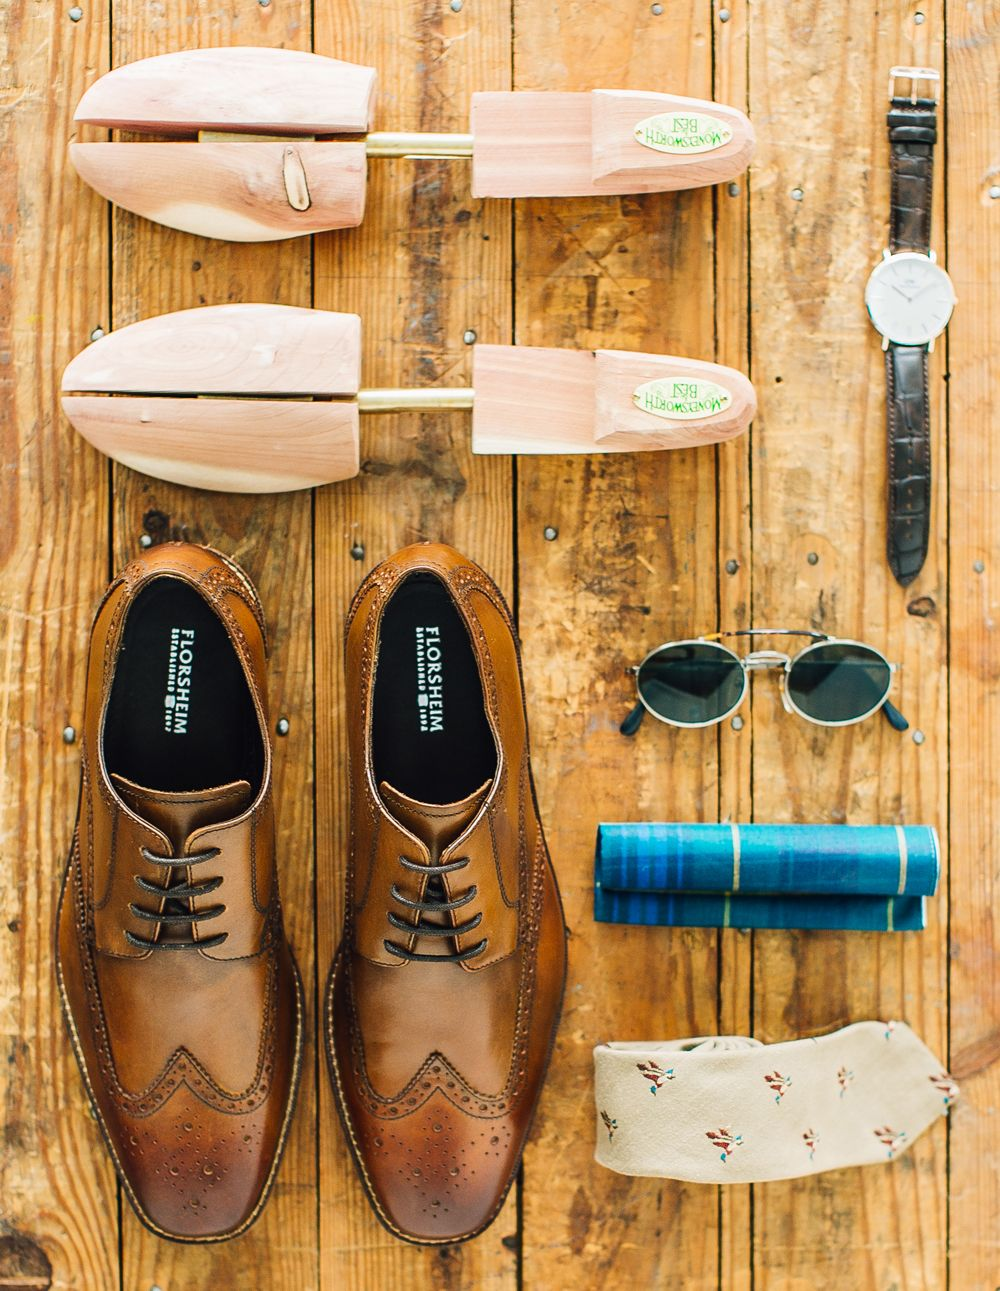 Add a pair of Florsheim dress shoes to your repertoire.